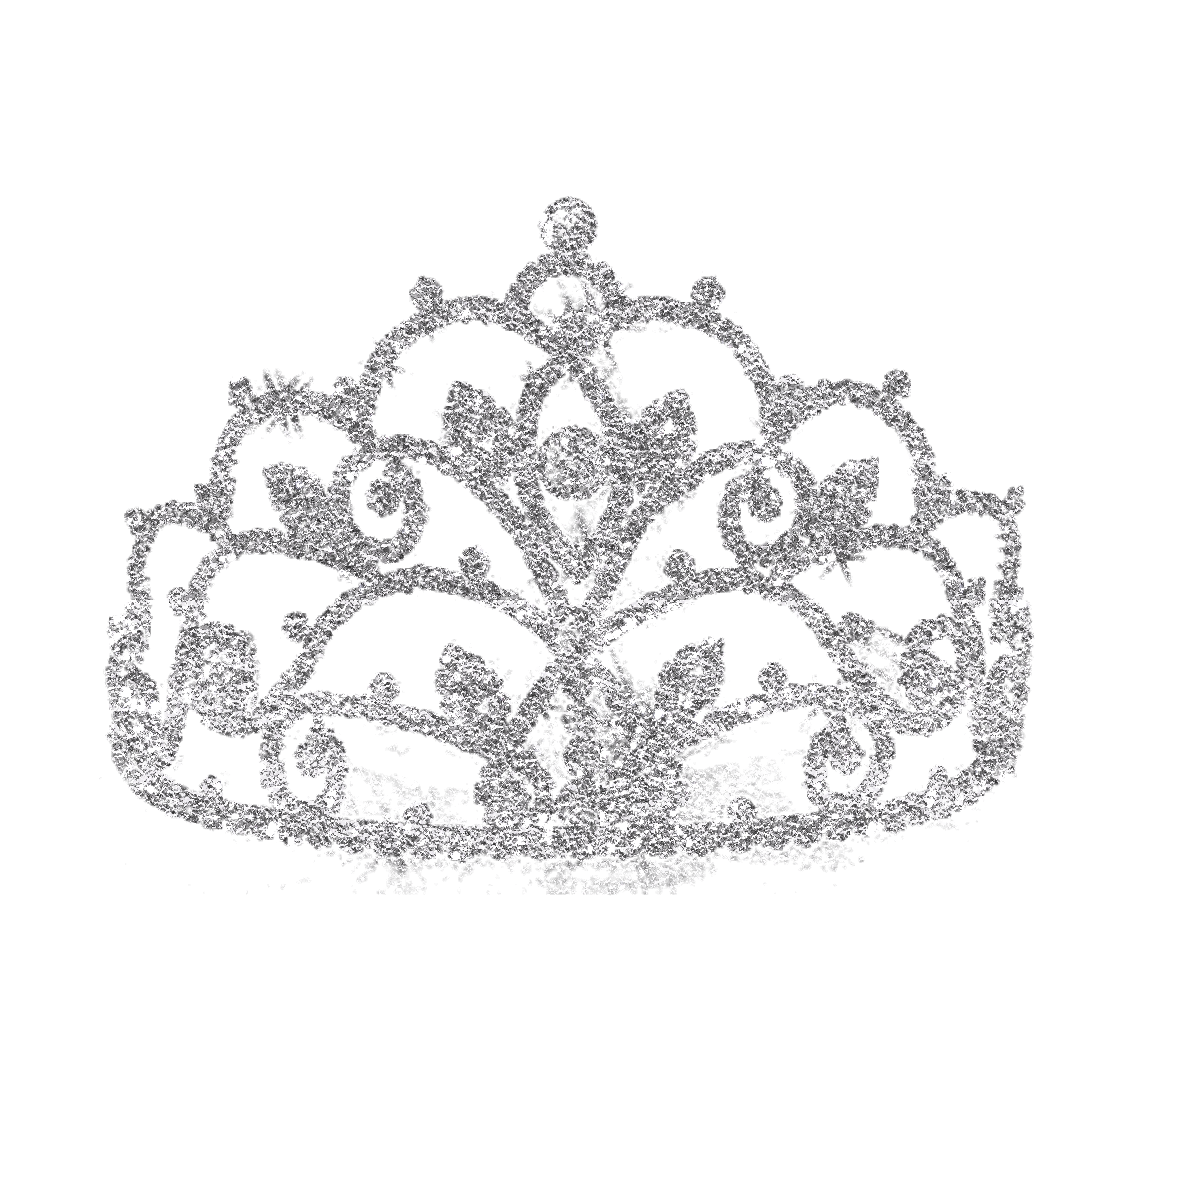 Clipart sweet sixteen crown image freeuse Crowns Images for your Sweet 16. | Oh My Sweet 16! image freeuse